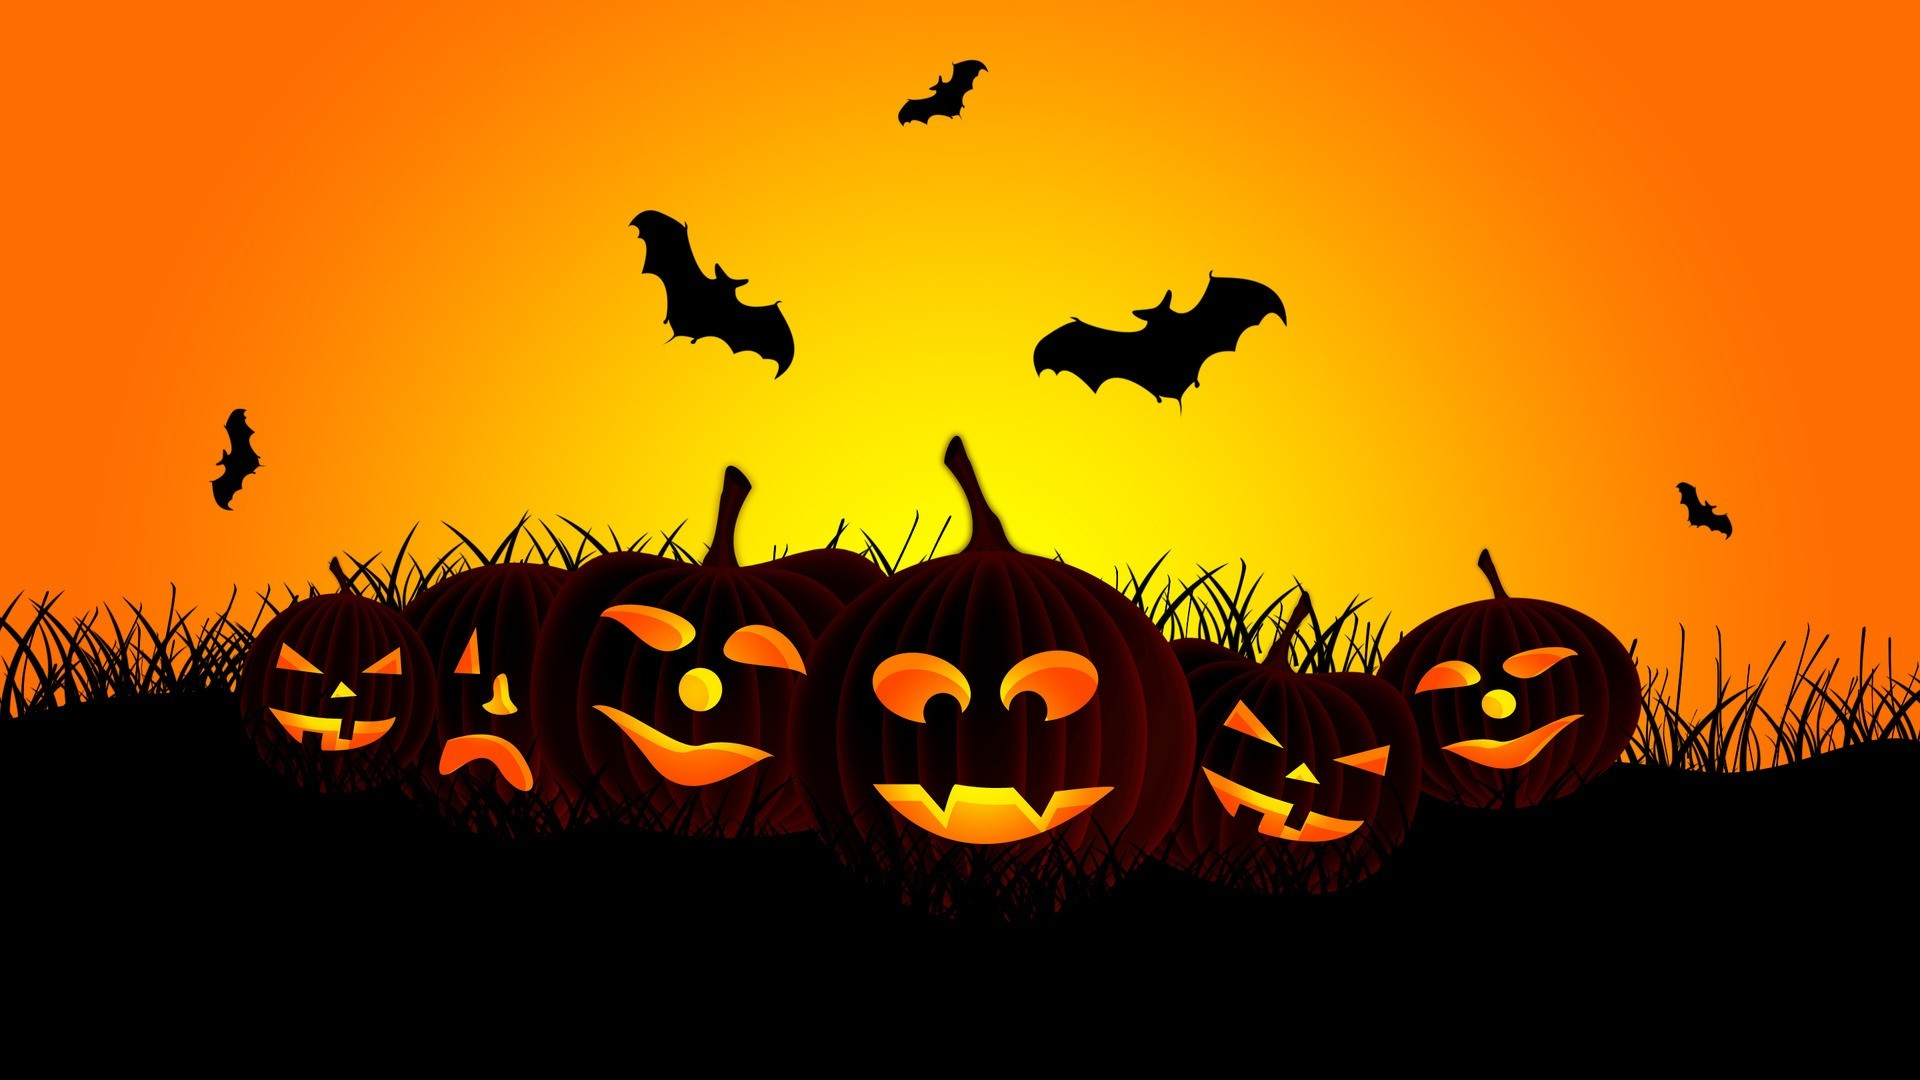 Free wallpaper for Halloween Halloween-Images-Backgrounds-&-Wallpapers